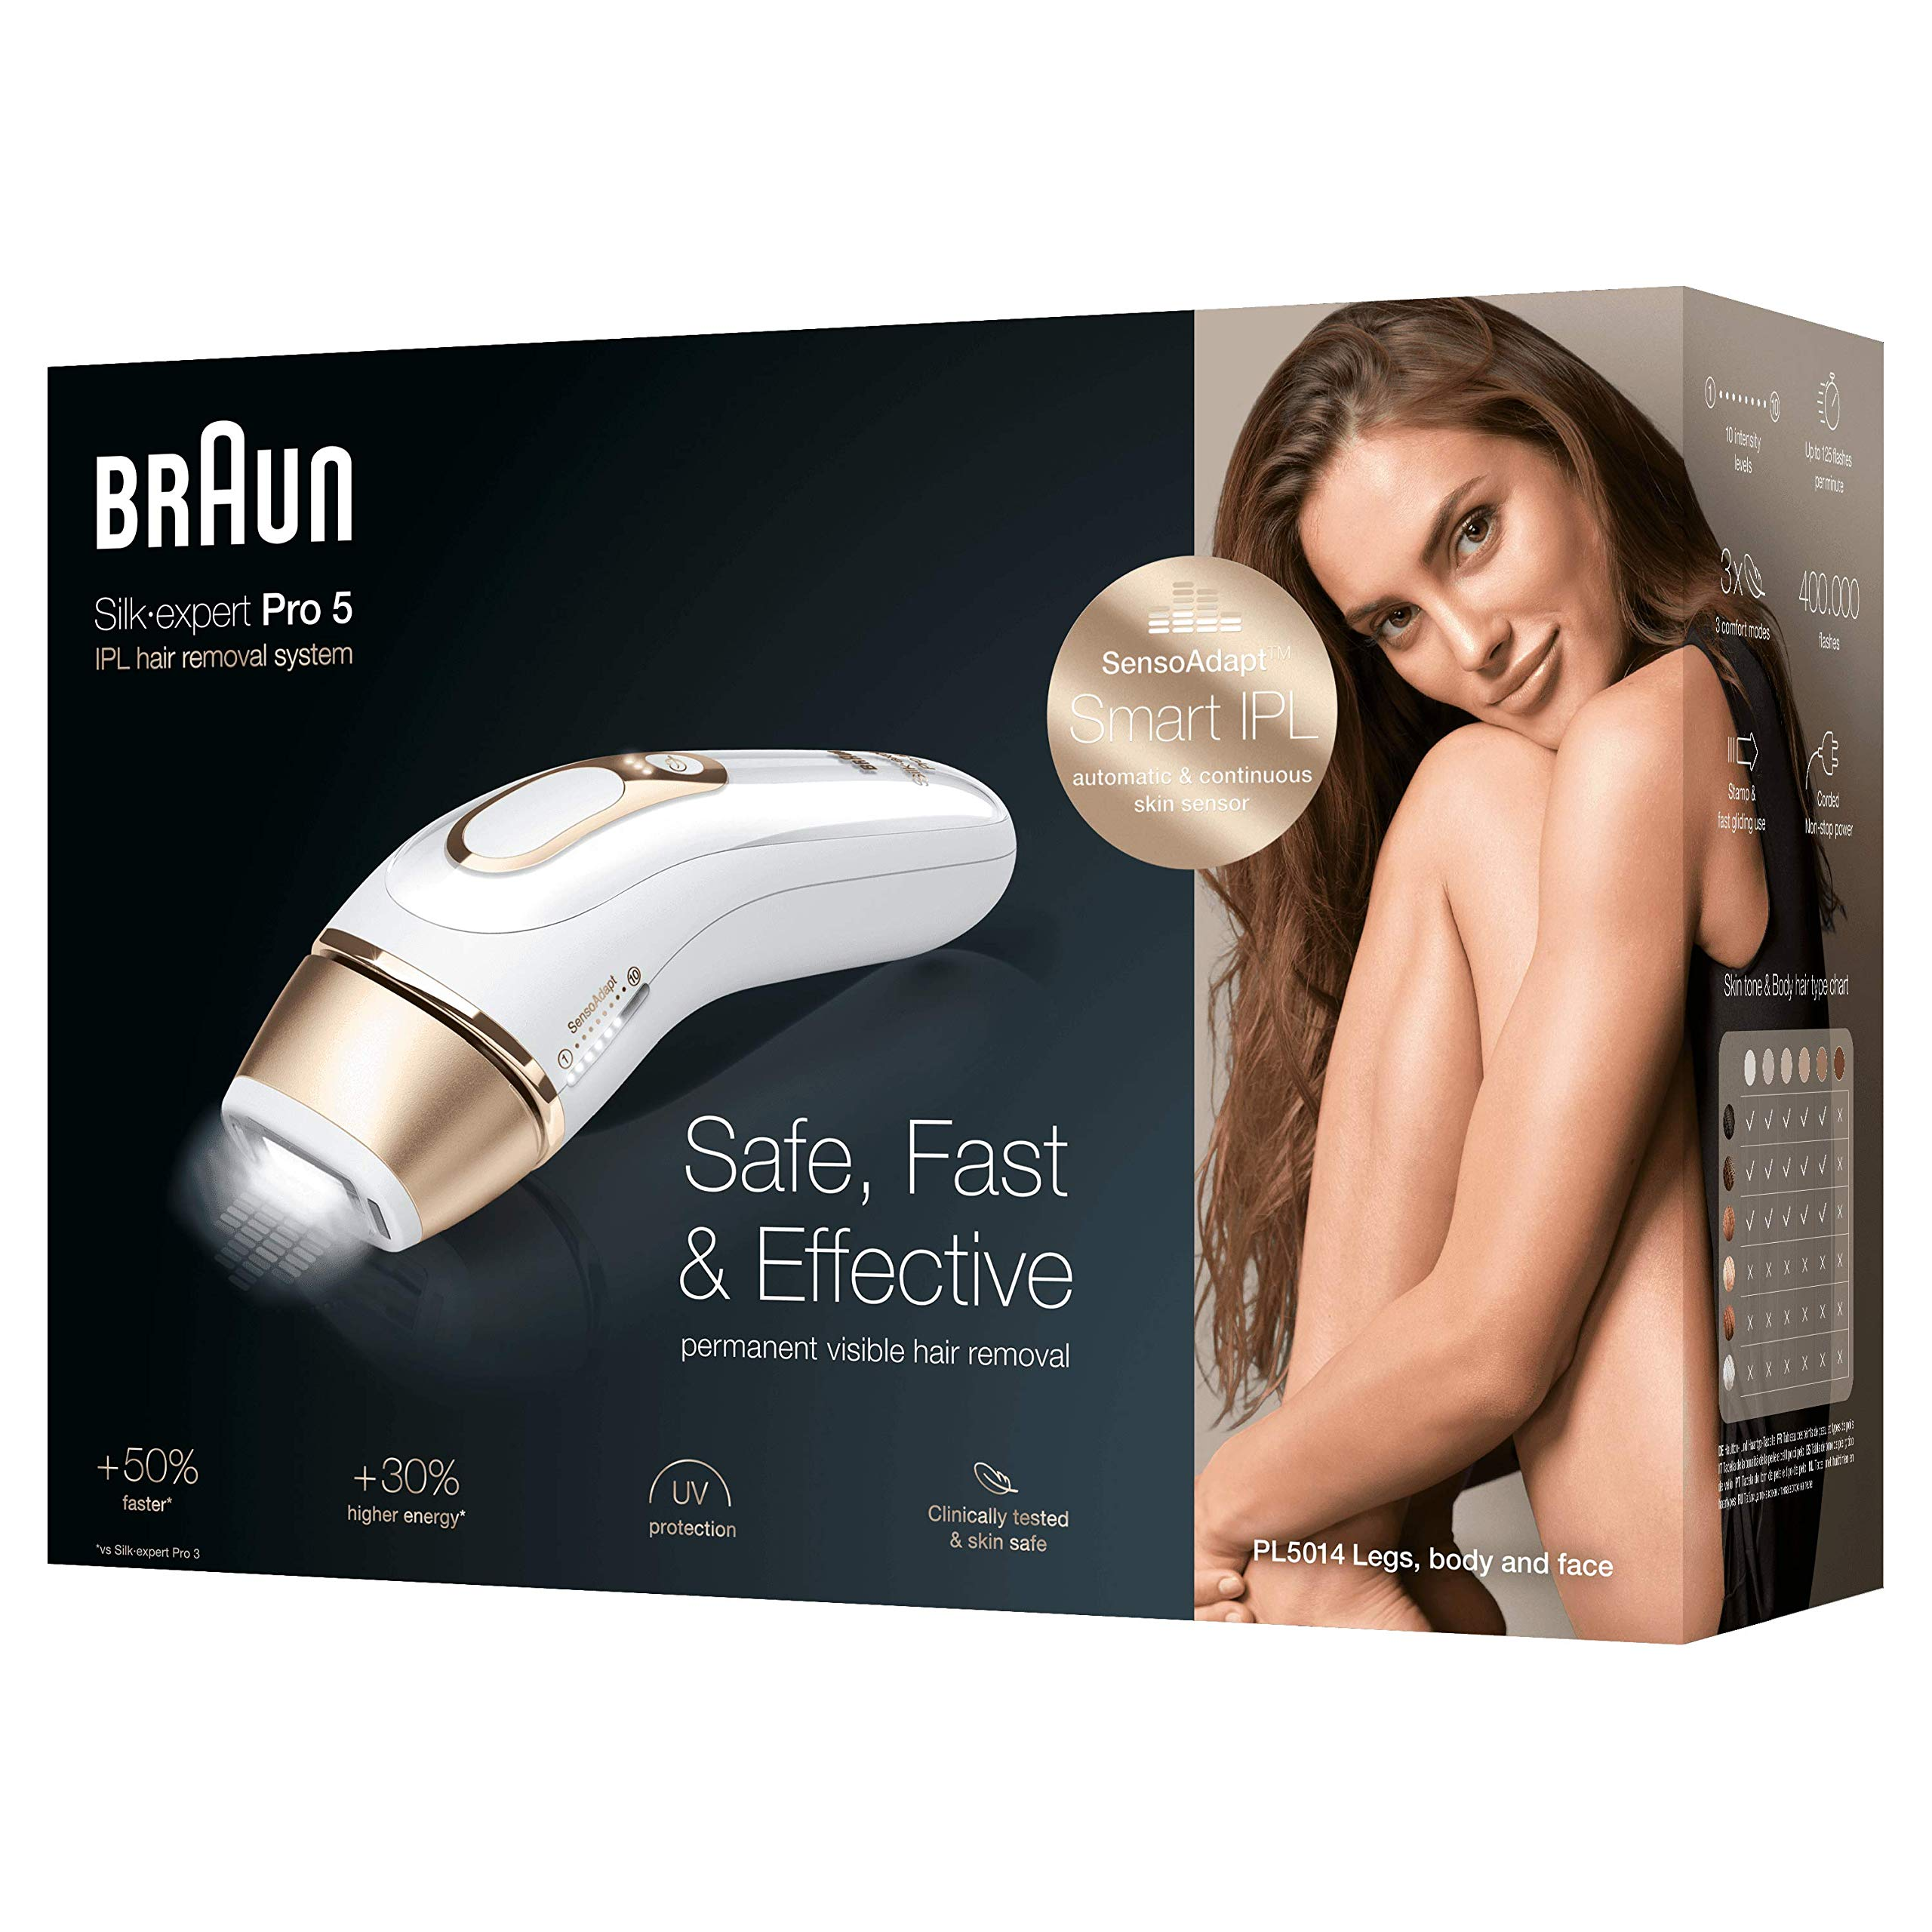 Braun Ipl Silk Expert Pro 5 Pl5014 Generation Ipl Permanent Visible Laser Hair Removal For Women And Men With Premium Pouch And Venus Razor White And Gold Buy Online In United